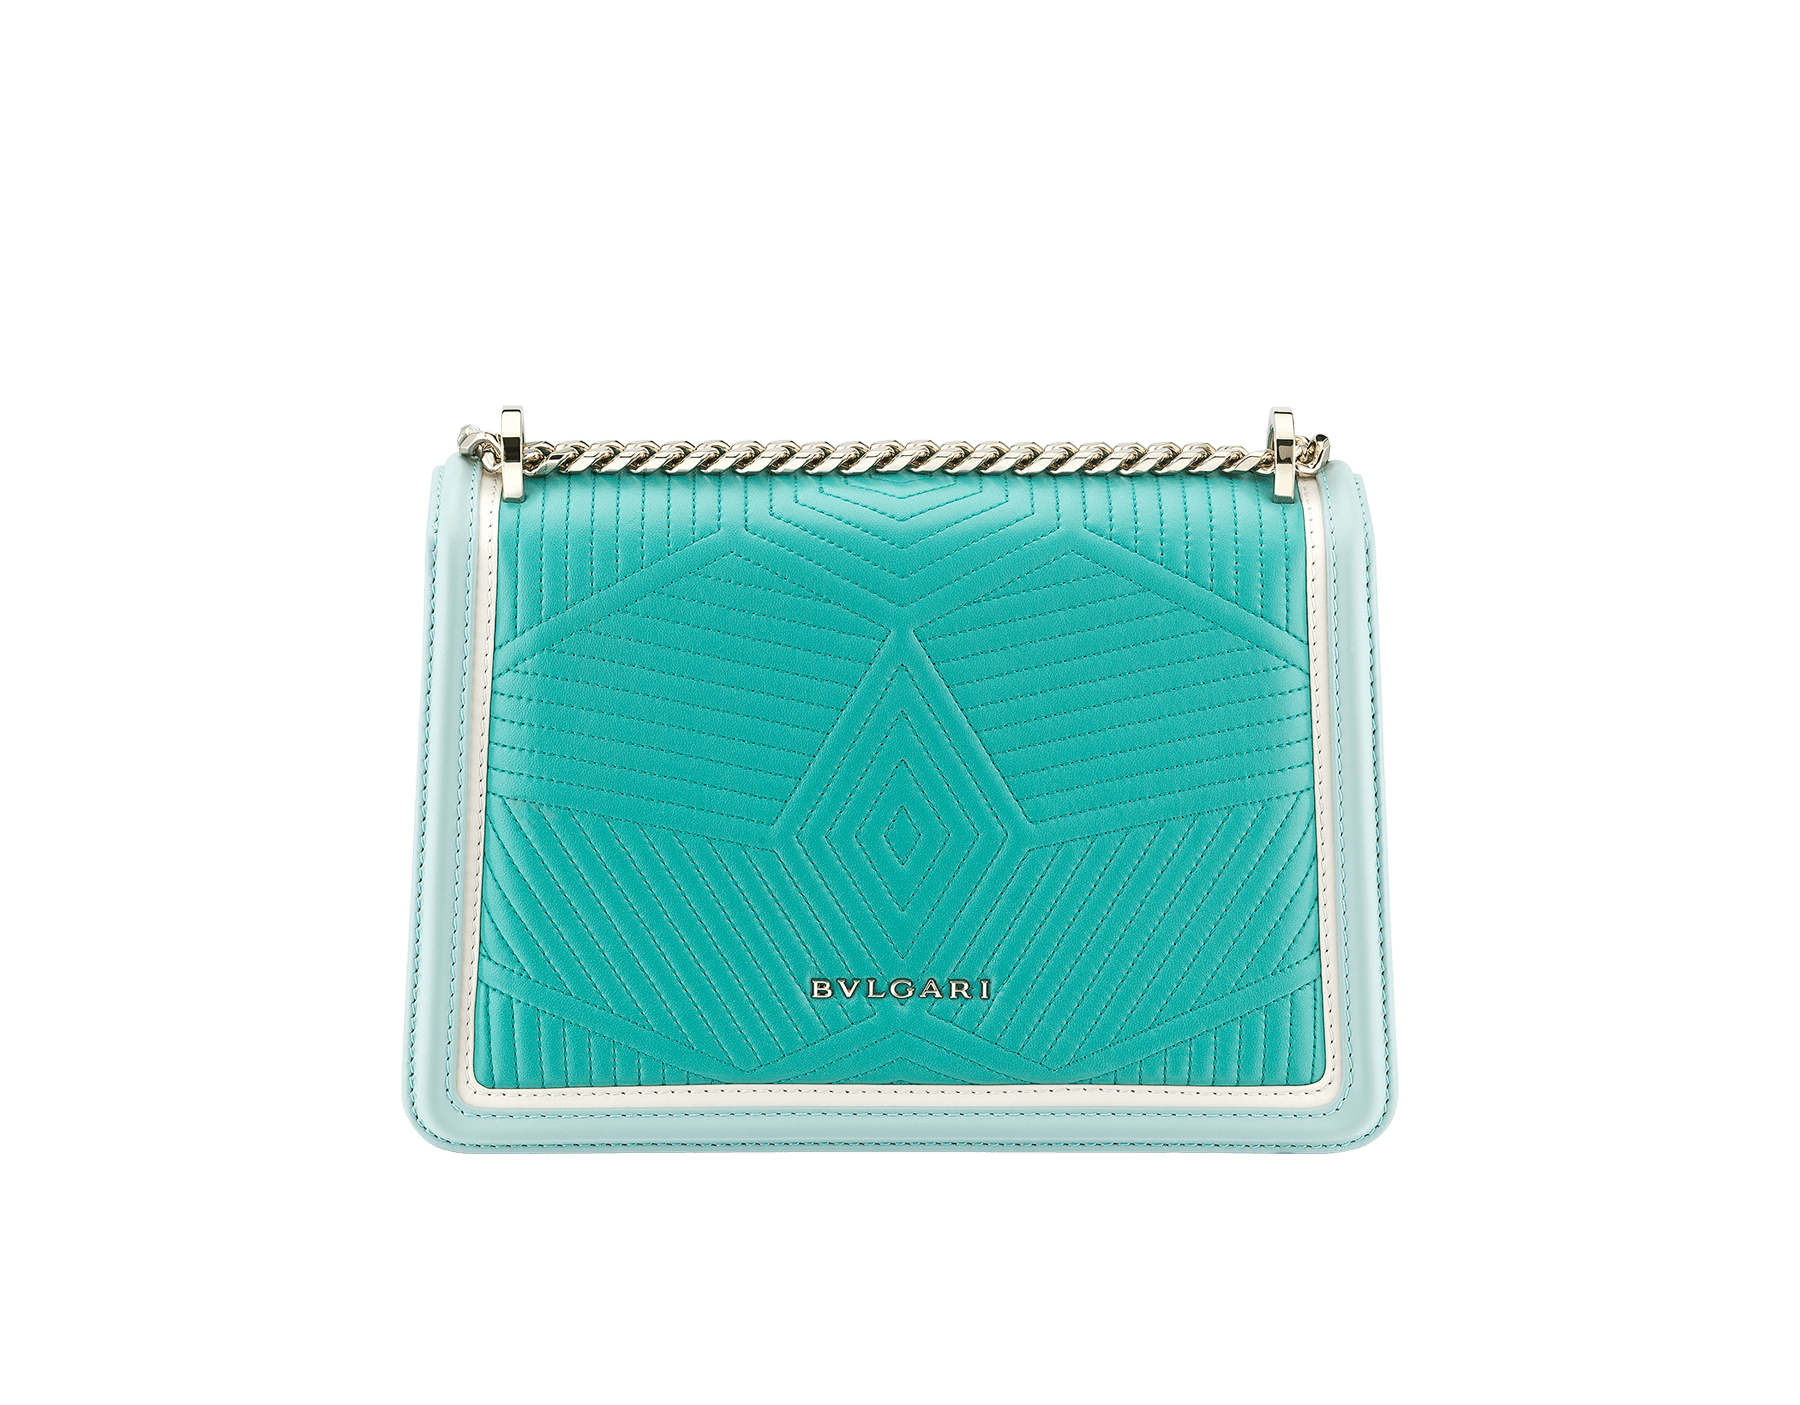 """Serpenti Diamond Blast"" shoulder bag in arctic jade quilted nappa leather and with glacier turquoise and white agate smooth calf leather frames. Iconic snakehead closure in light gold plated brass enriched with arctic jade and glacier turquoise enamel and black onyx eyes. 288824 image 3"